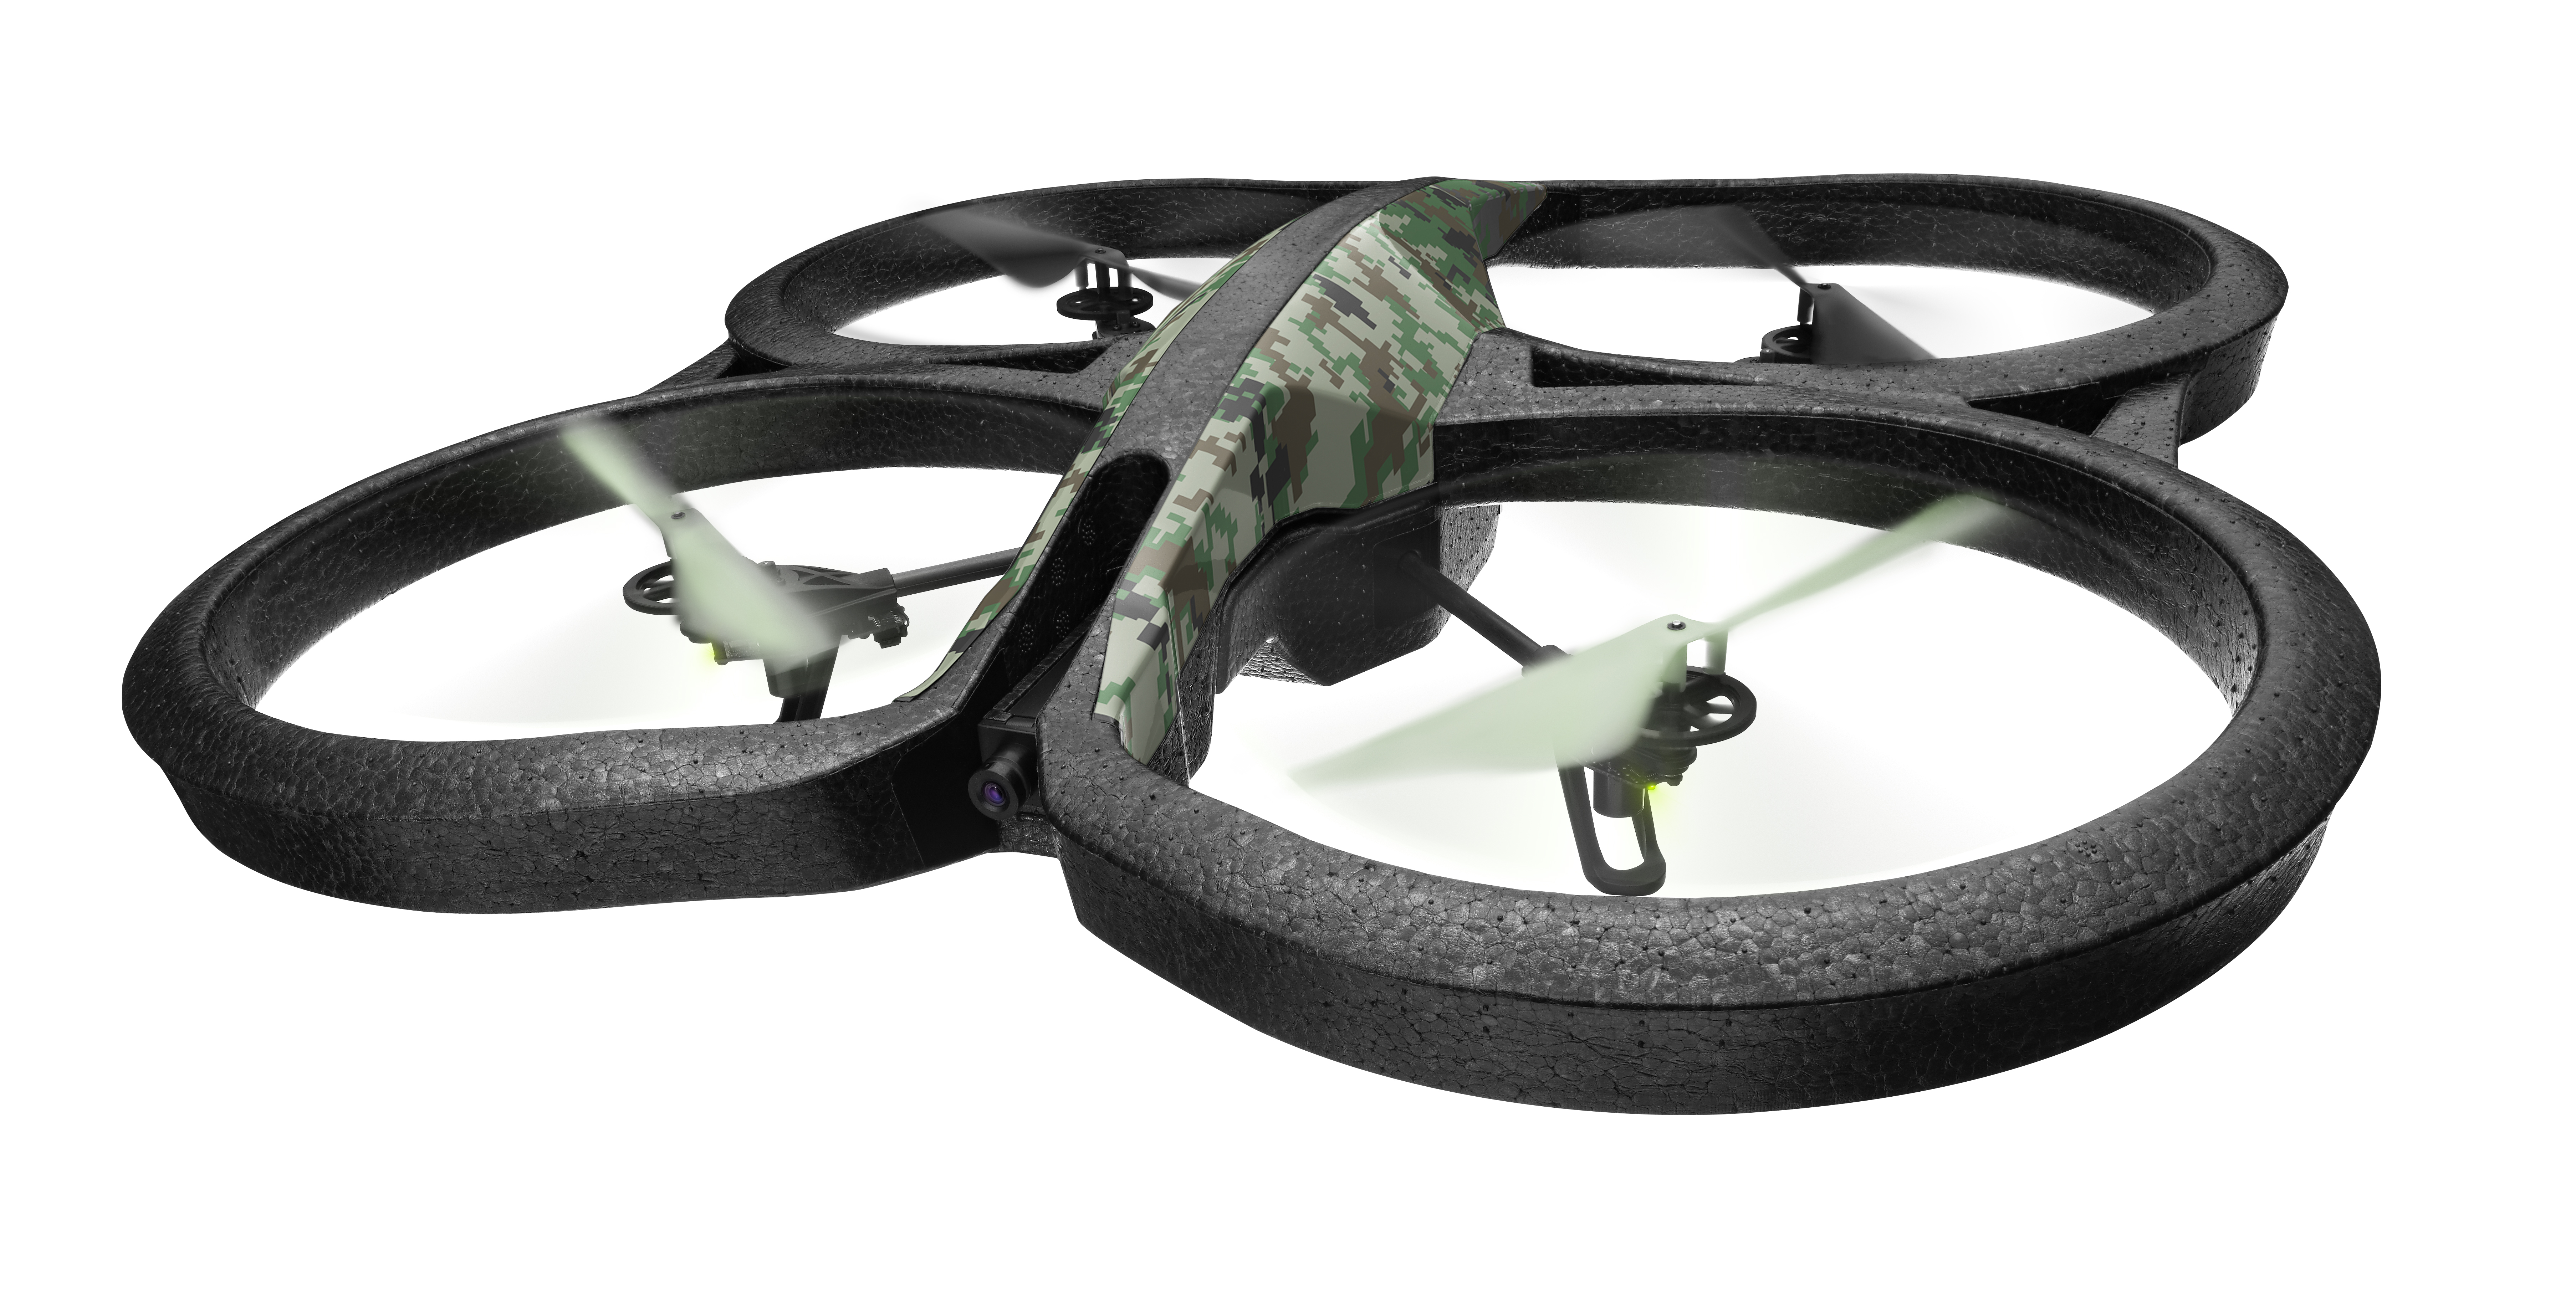 parrot drone 2 0 elite edition with Ar Drone 2 0 Test Vergleich Bewertung on Watch likewise Parrot Ardrone 20 Elite édition also Characteristics further F 117852414 Mat4260196241533 additionally Parrot Ar Drone Rc.